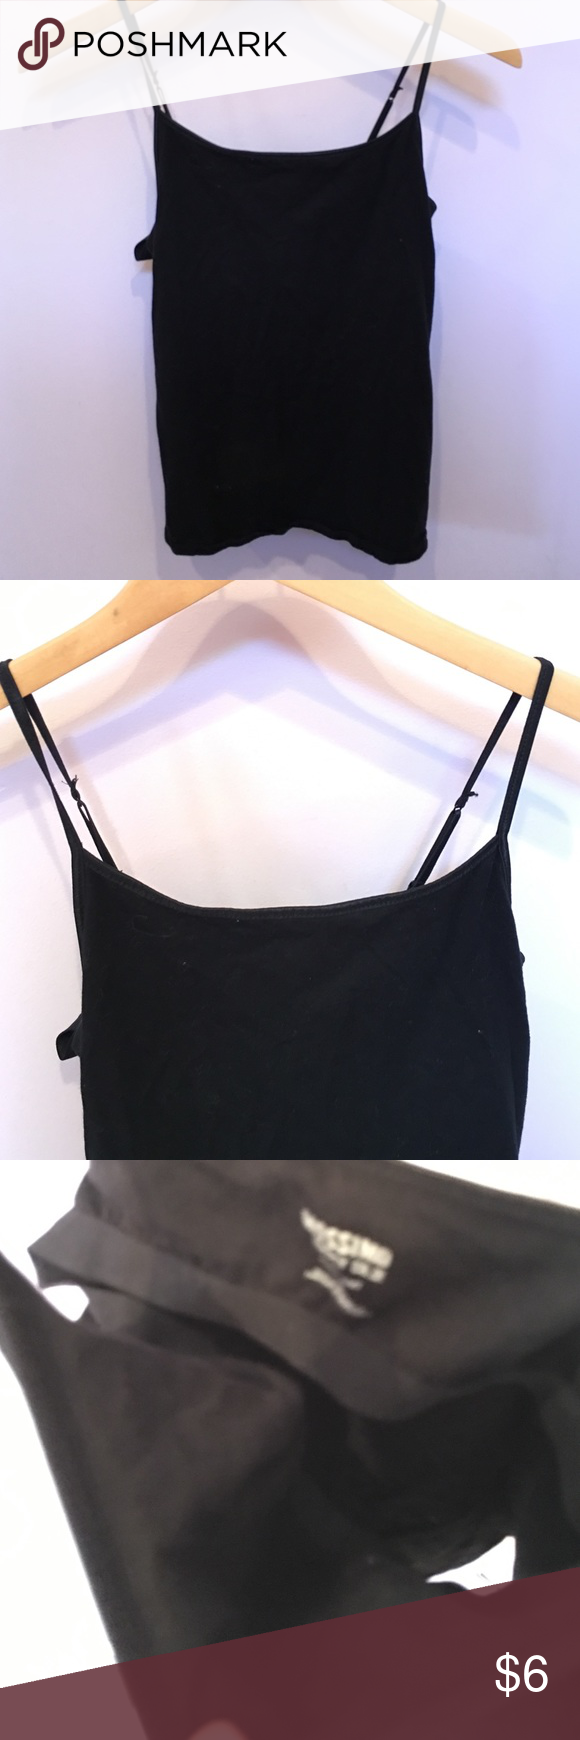 Large black cami size large Mossimo Supply Co Tops Camisoles